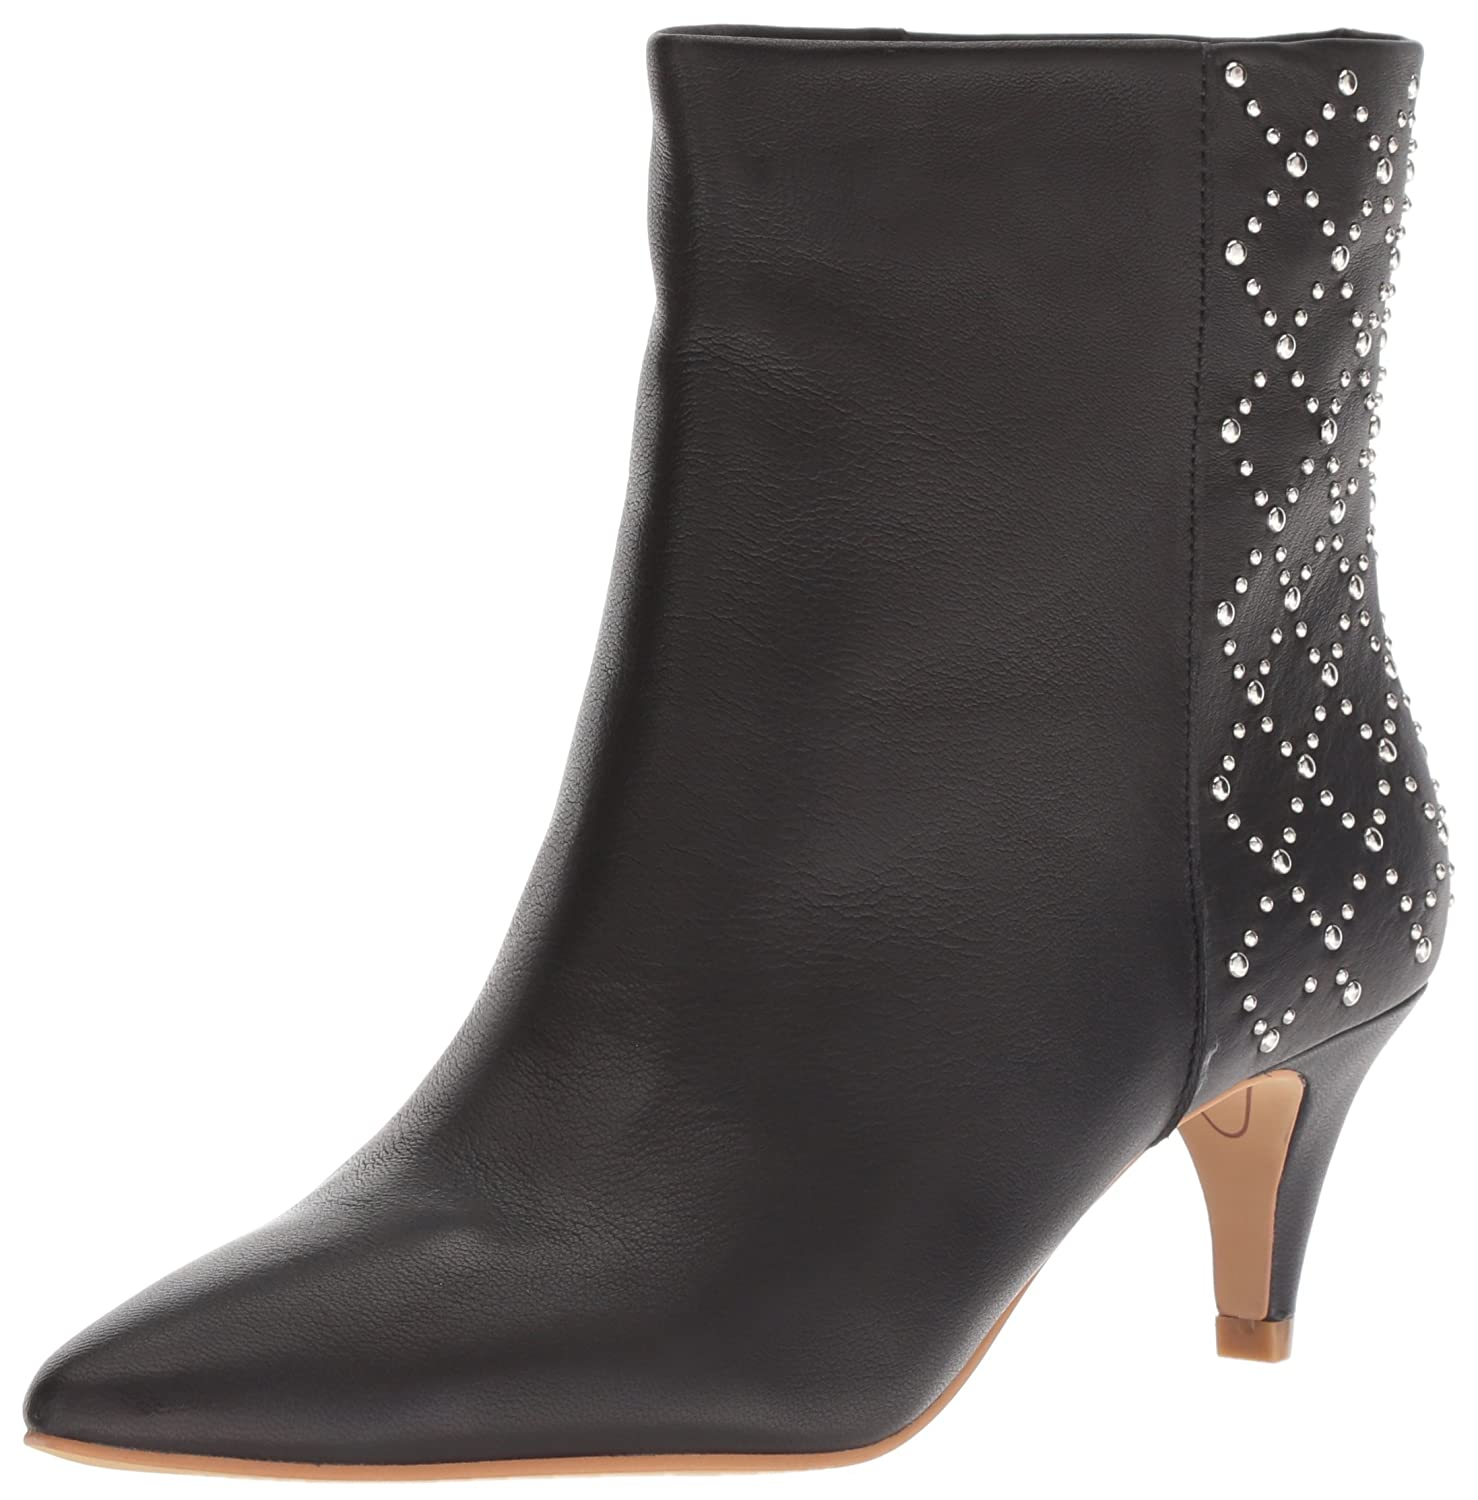 Dolce Vita Women's Dot Ankle Boot Leather B07C9LN2YZ 6.5 M US|Black Leather Boot 9bbf2d